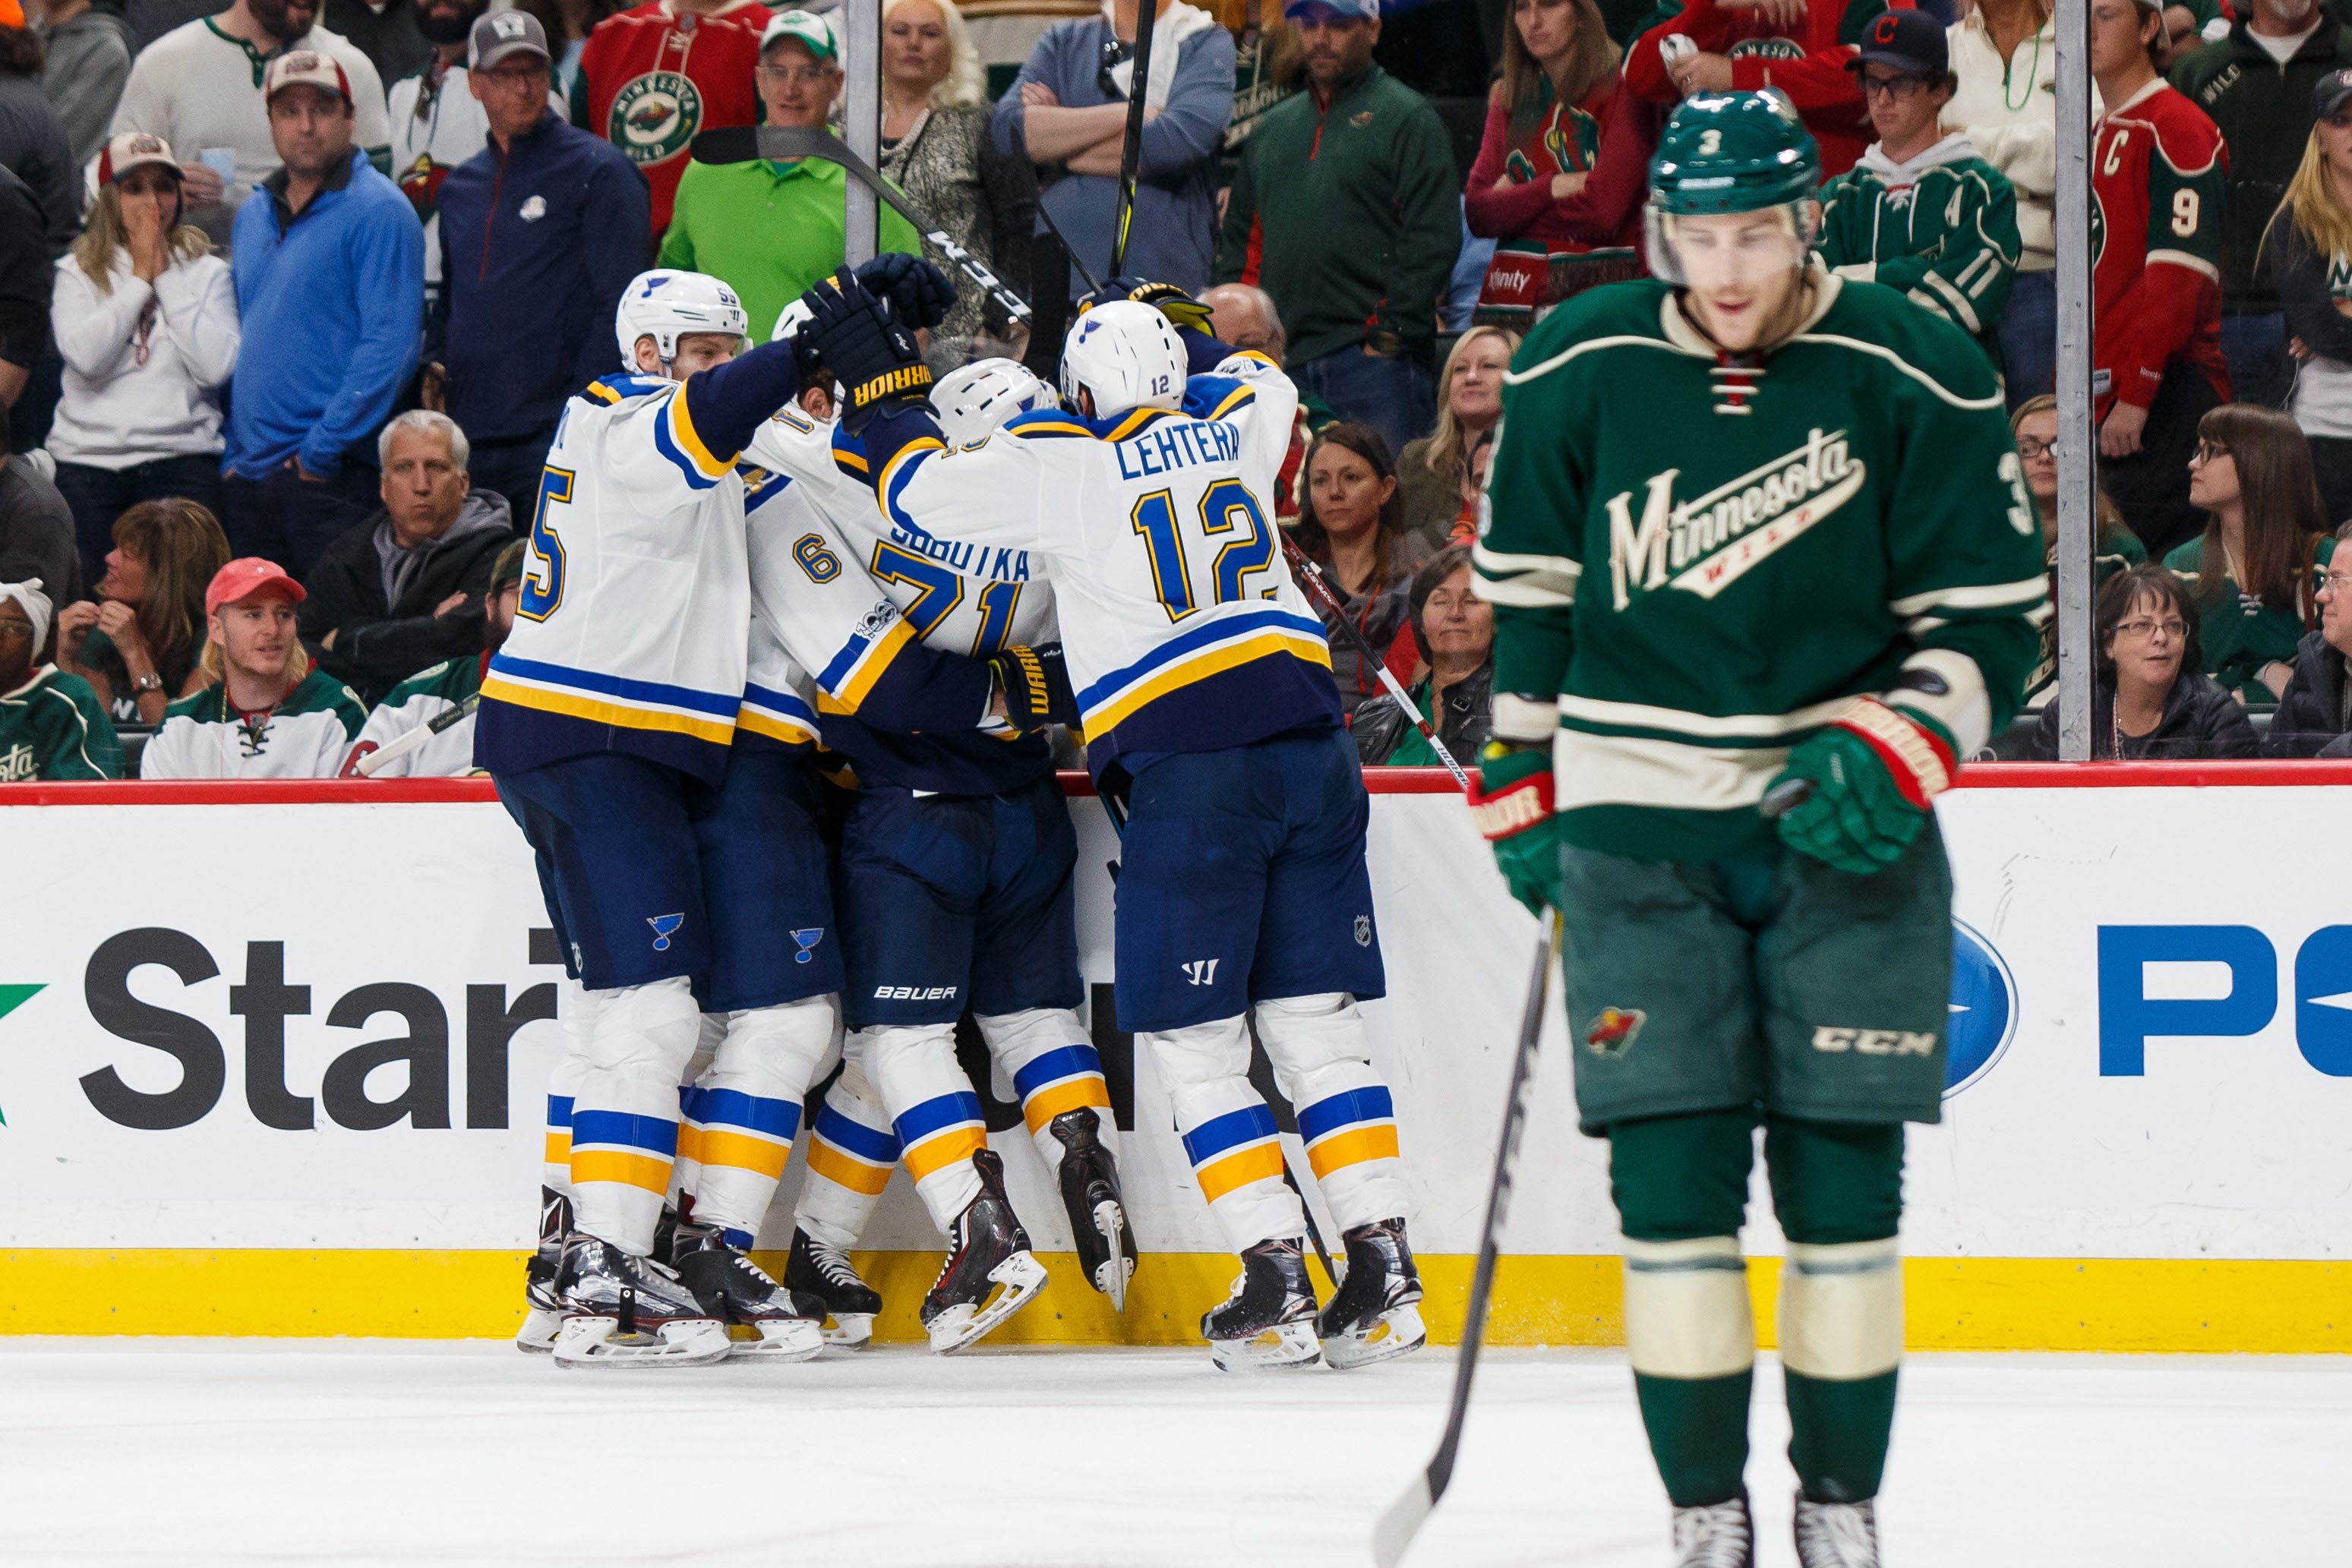 10025627-nhl-stanley-cup-playoffs-st.-louis-blues-at-minnesota-wild